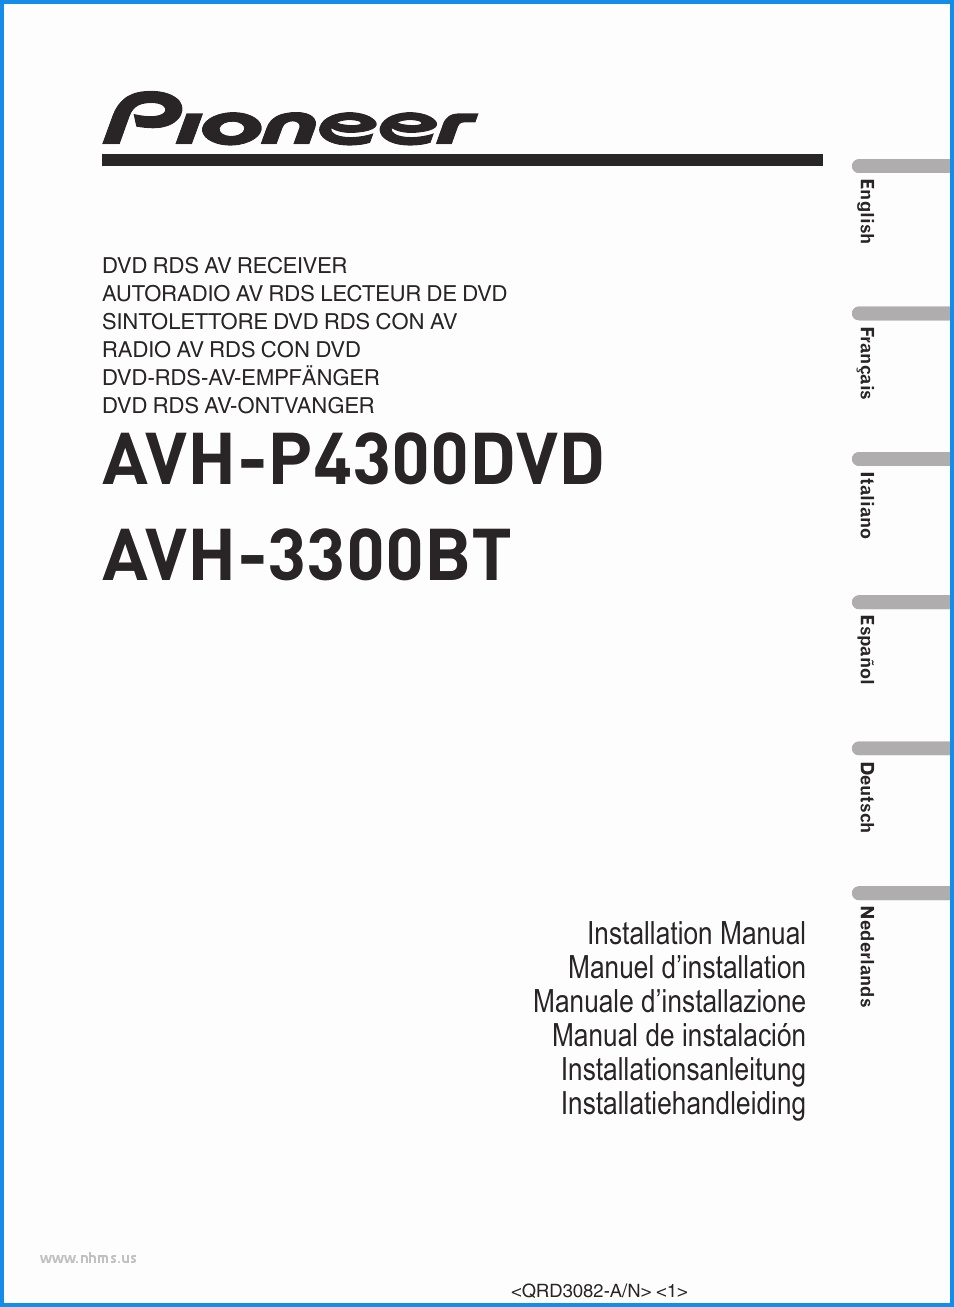 Pioneer Avh P2300Dvd Wiring Diagram - All Wiring Diagram - Pioneer Avh P2300Dvd Wiring Diagram